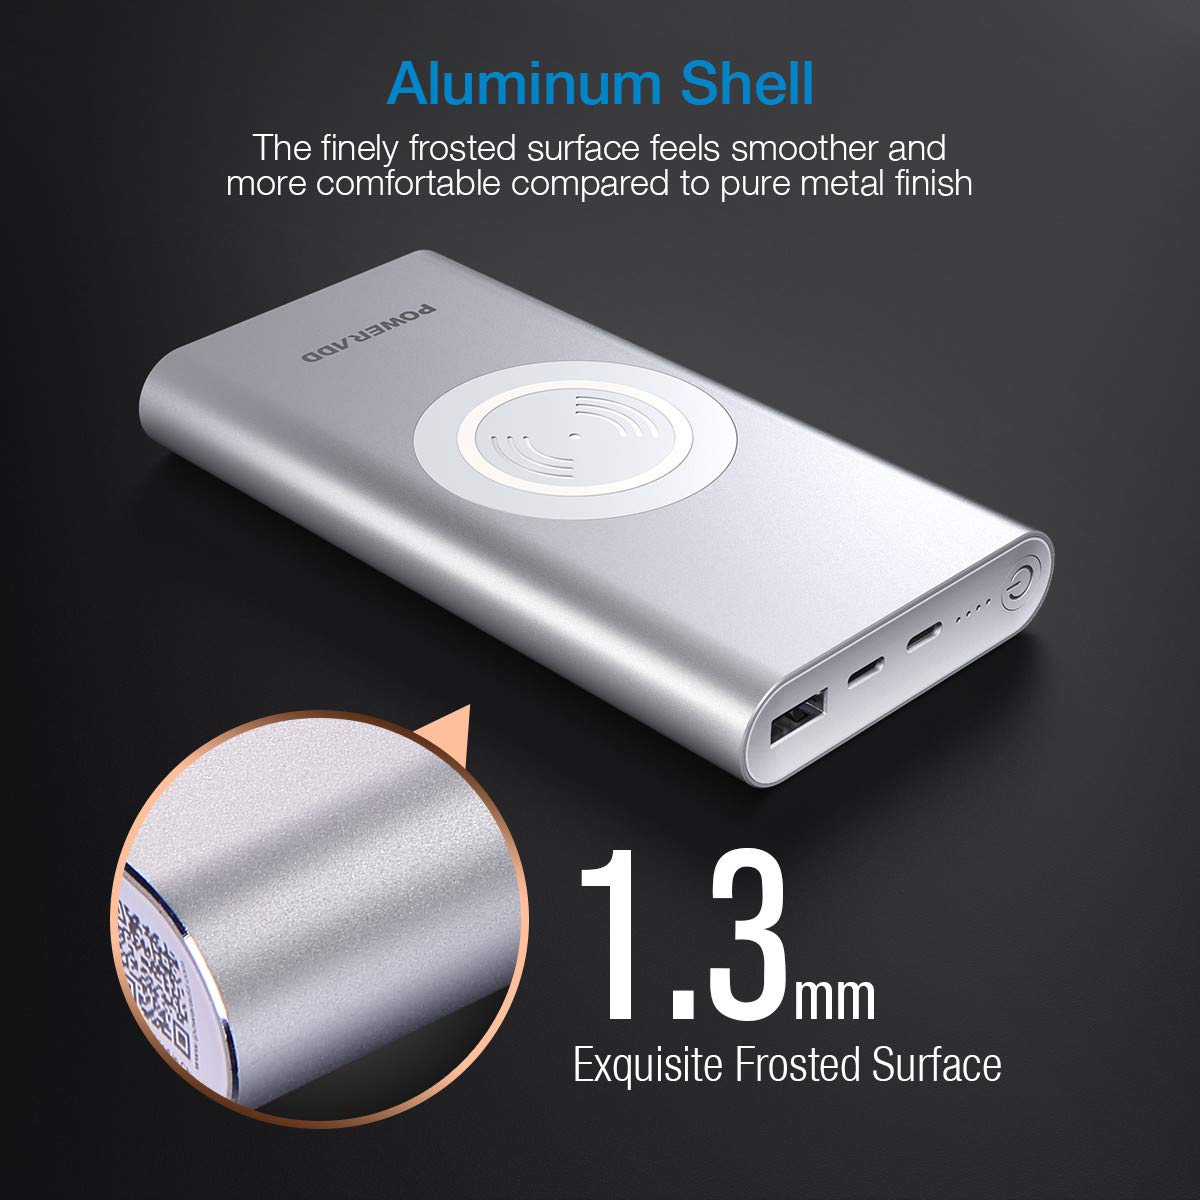 Poweradd Wireless Charger Power Bank, QiPower 10000mA iPhone Samsung wireless Portable Charger with Wireless Output and USB Output For iPhone 8 Plus, iPhone X, Samsung S7 S8 S9 S9 Plus-Silver